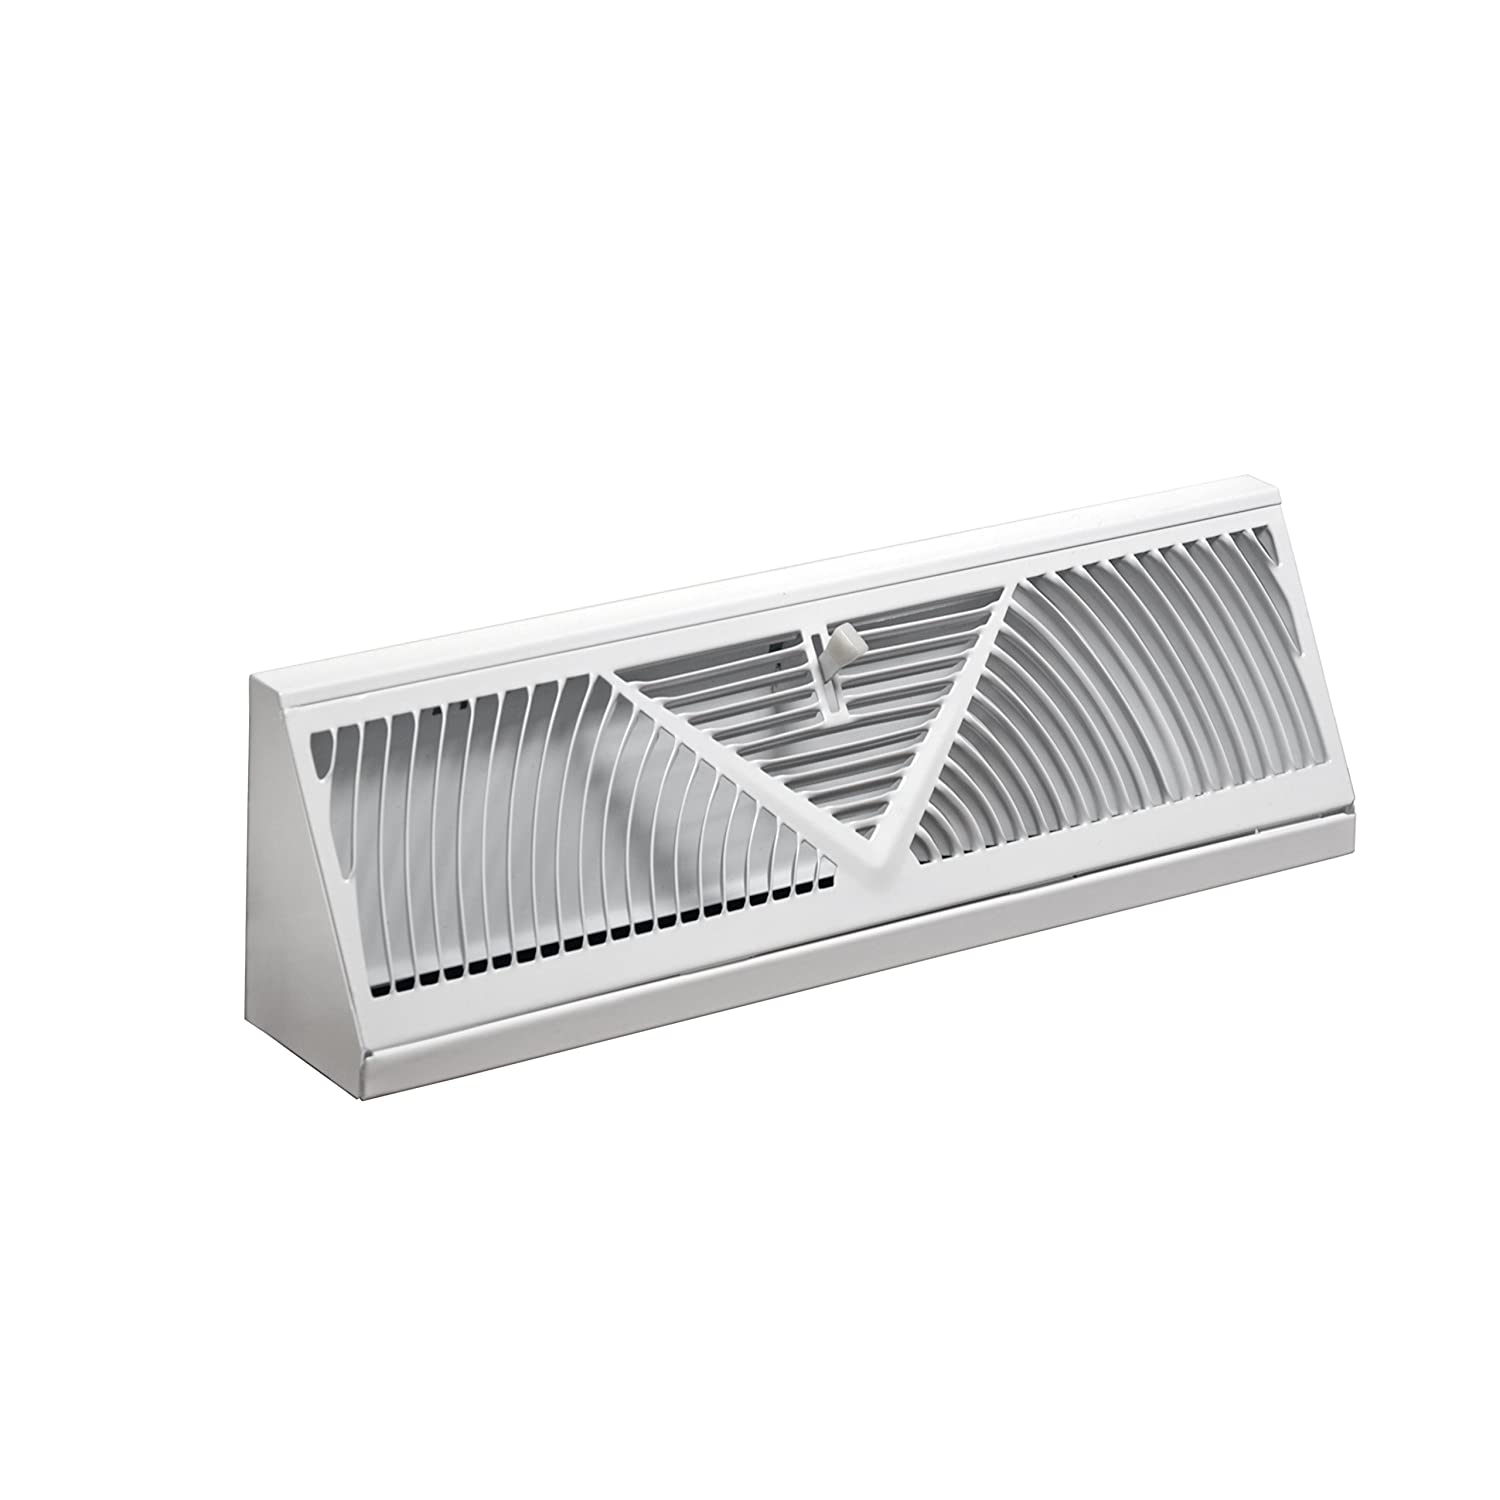 heavy grds hart cooley diffusers grd registers gauge floor residential and steel register grilles